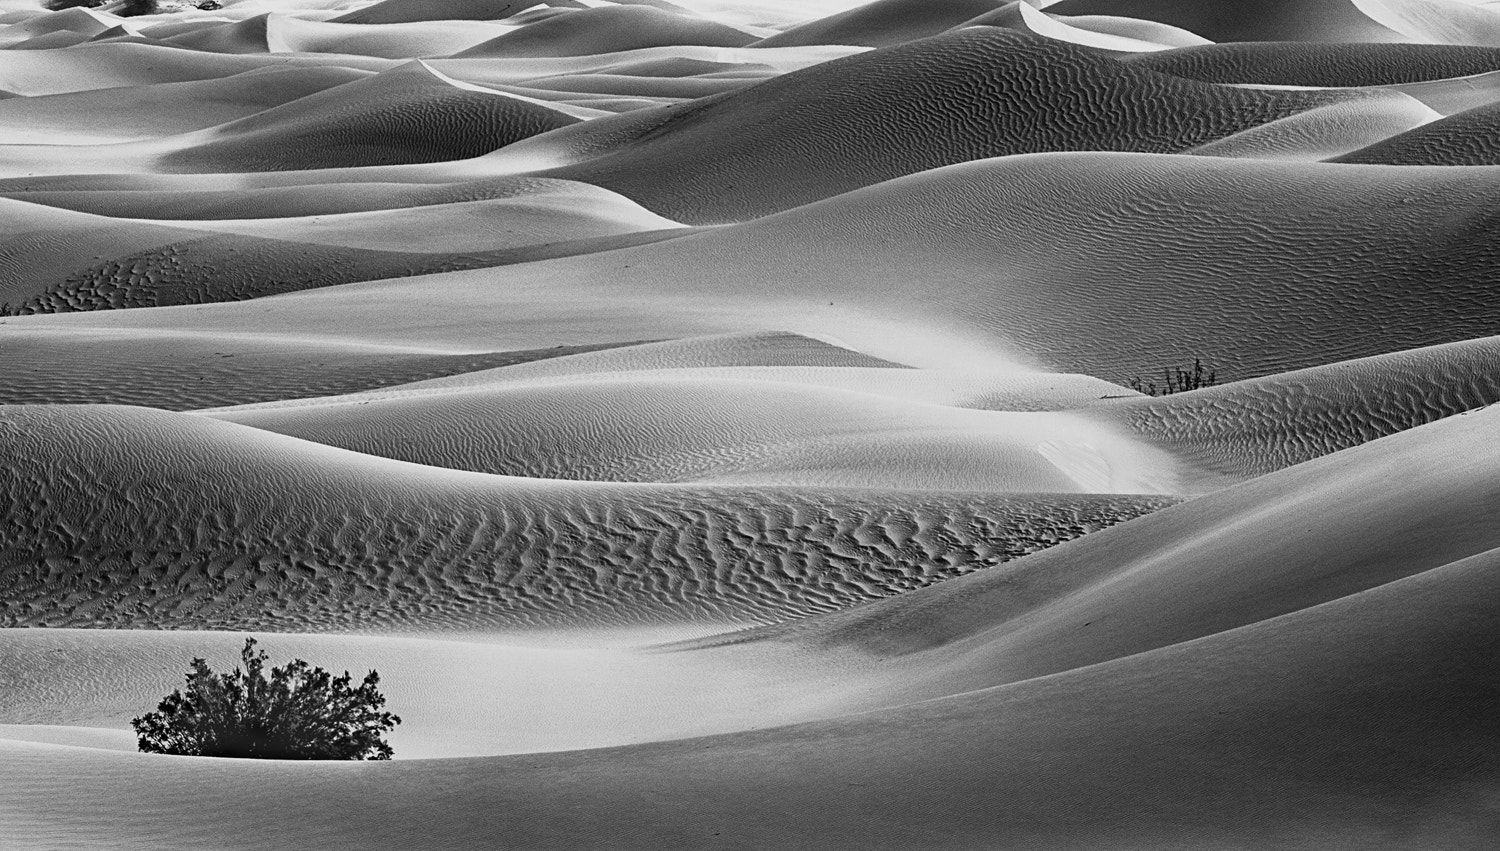 Photograph Sand Swept by Dustin Penman on 500px